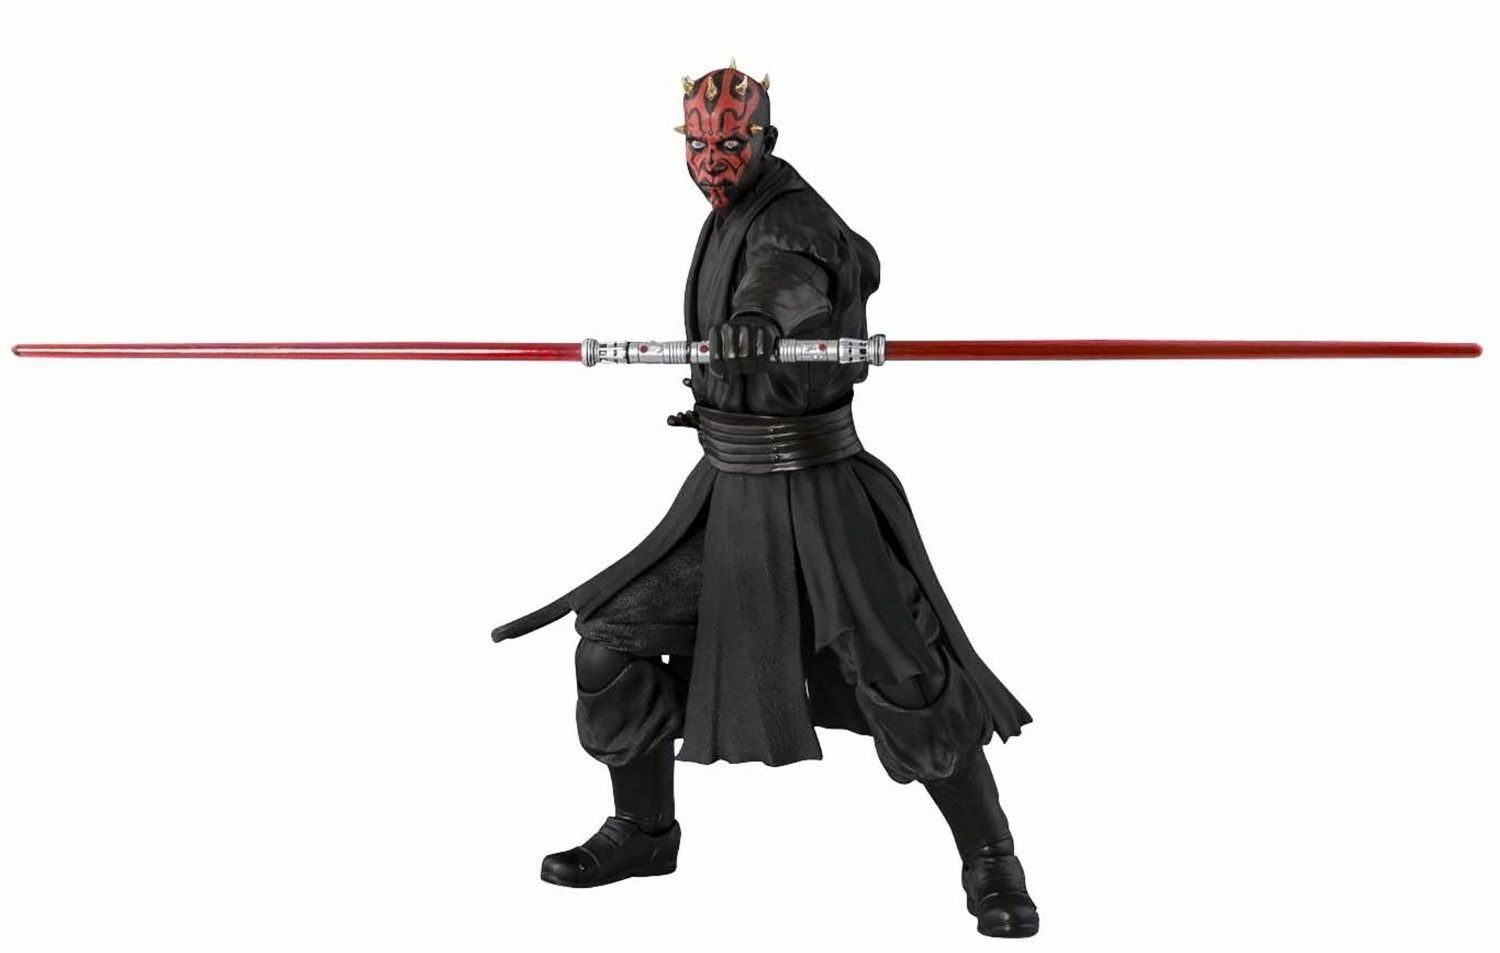 S.H.Figuarts Star Wars DARTH MAUL Action Figure BANDAI TAMASHII NATIONS Japan